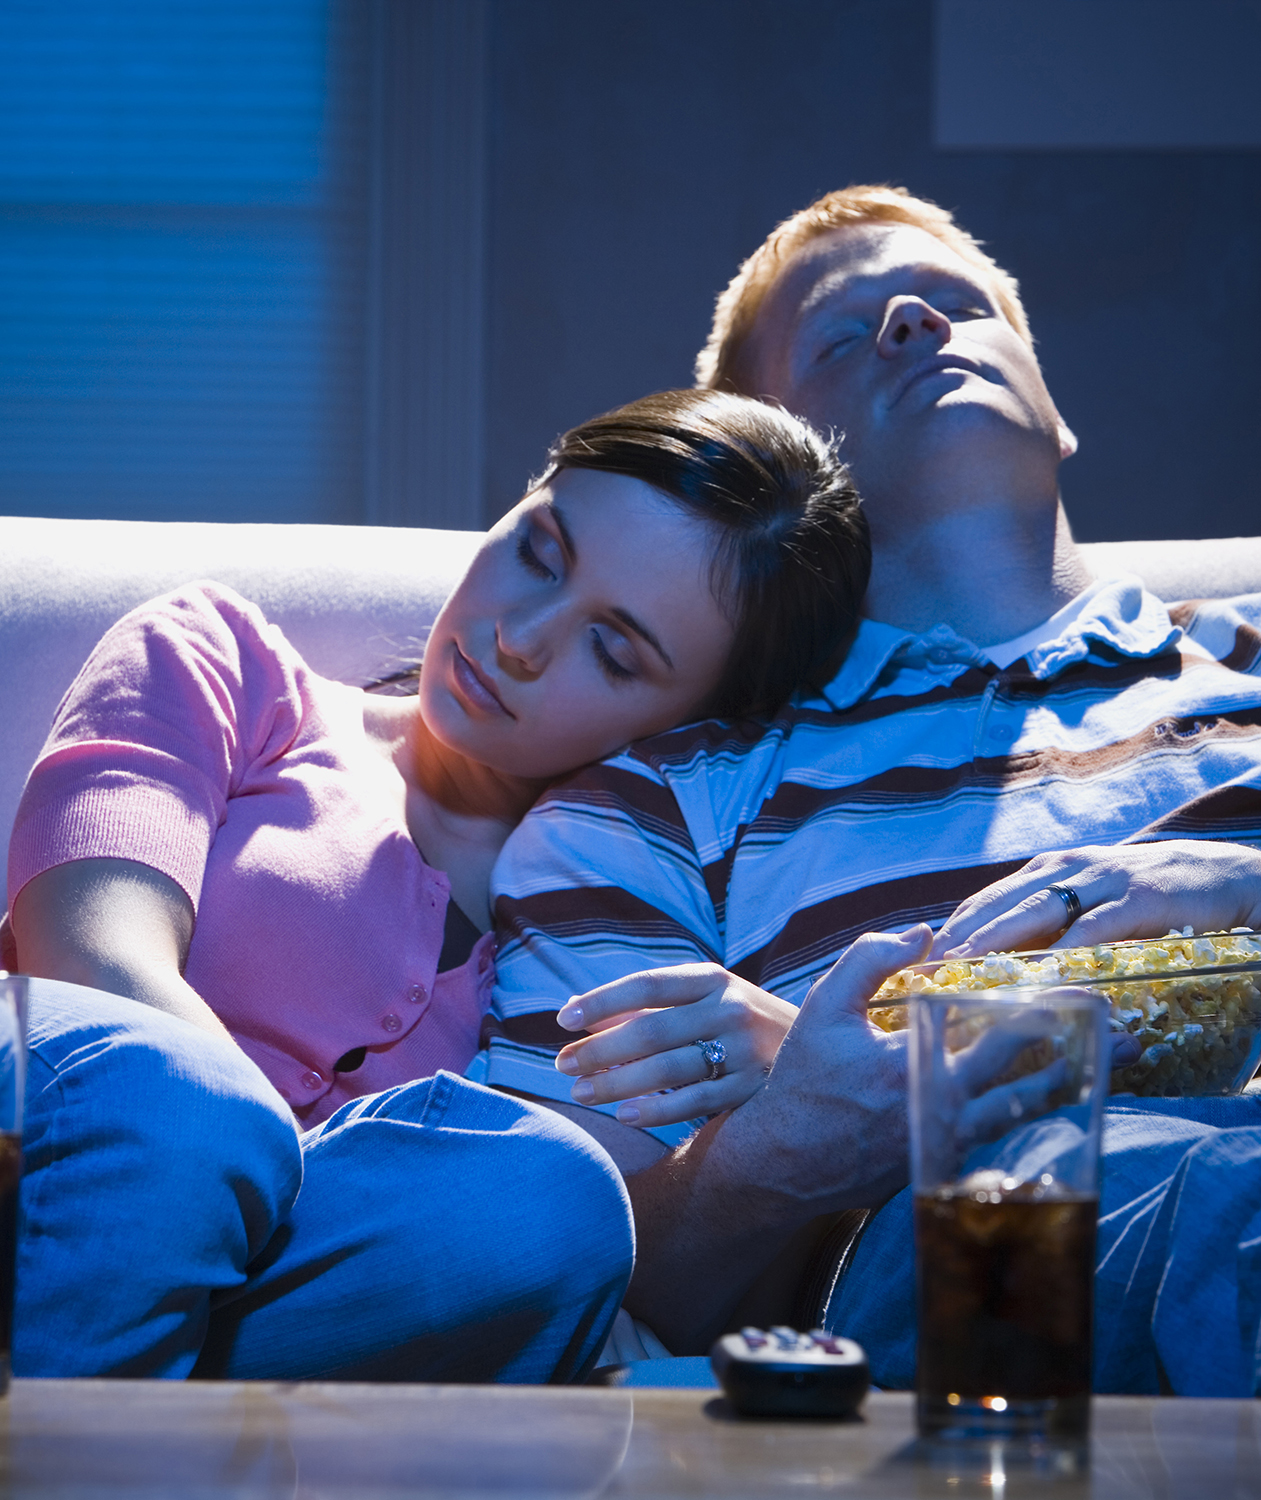 Couple falling asleep on couch watching TV